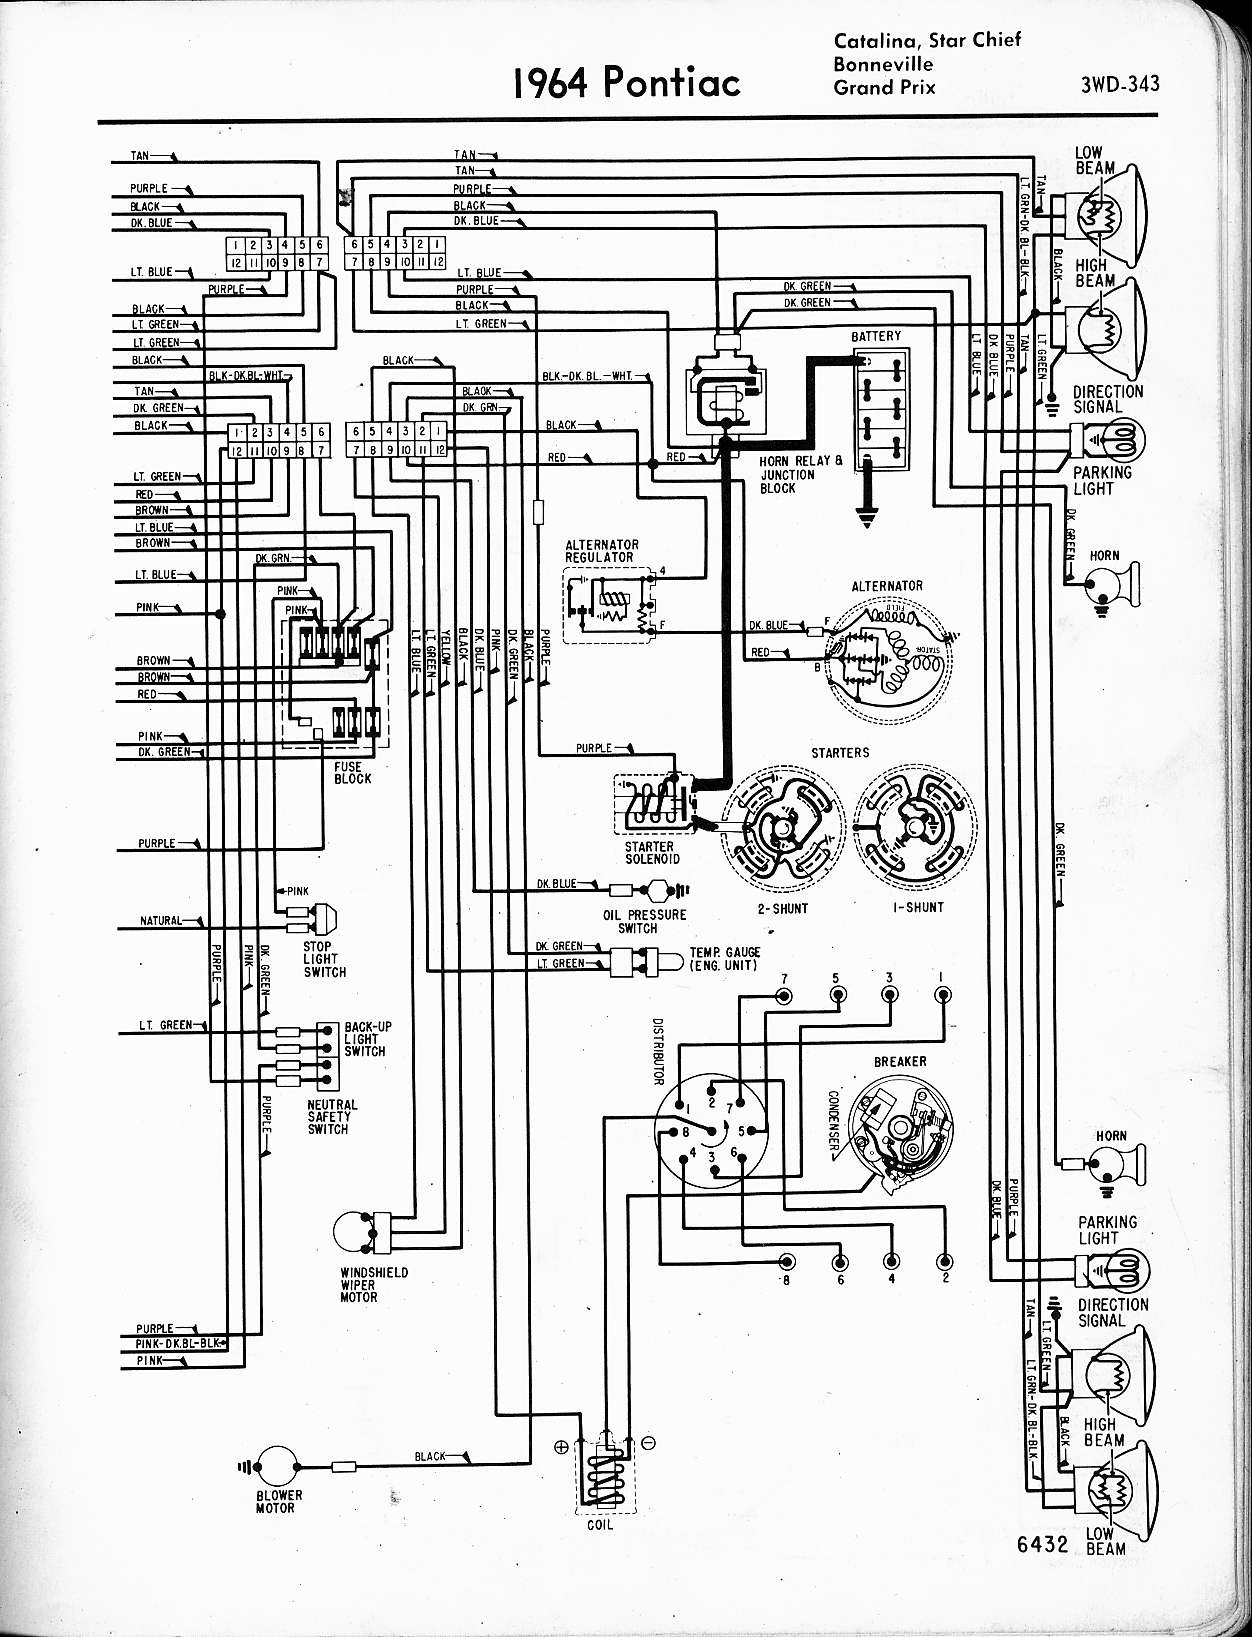 Sus 209 together with 1967 Pontiac Gto Hood Tach Diagram And further 1967 Camaro Fuse Box Diagram together with 3829782 1970 Ac Vacuum Hoses Pictures Needed moreover Tag Vacuum Hoses. on 1968 pontiac gto dash wiring diagram